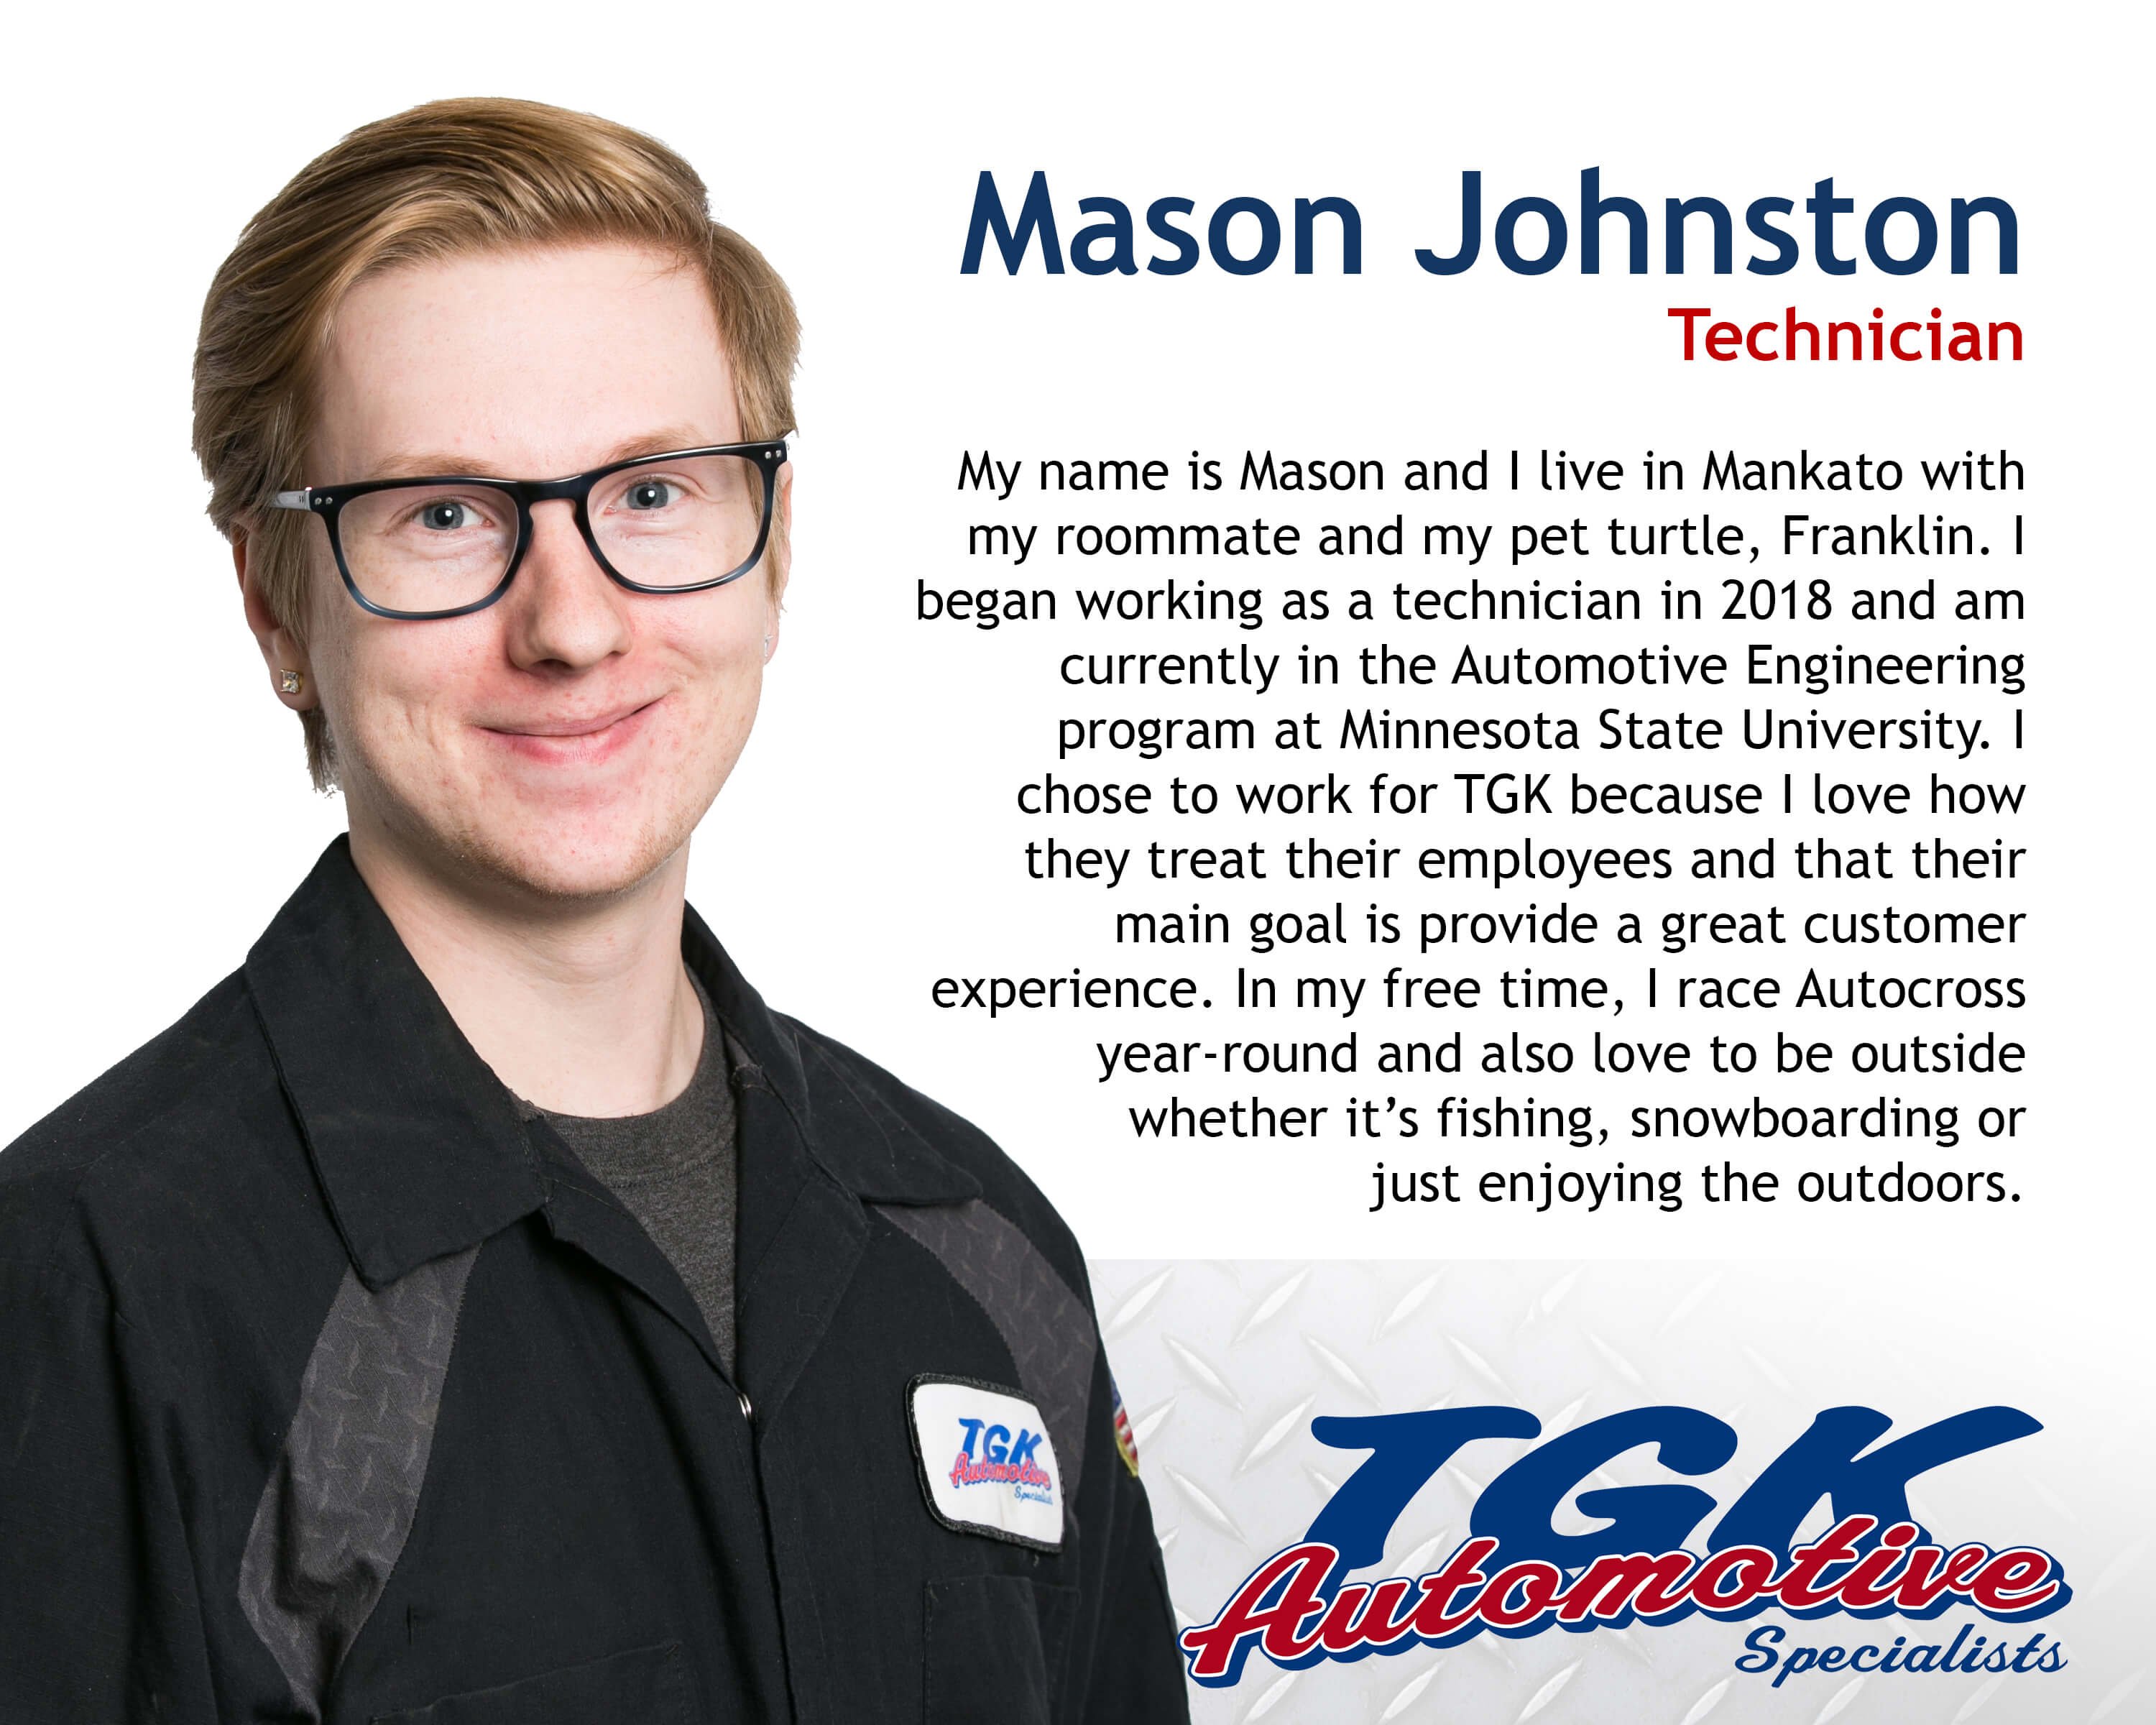 Mason Johnston BIO